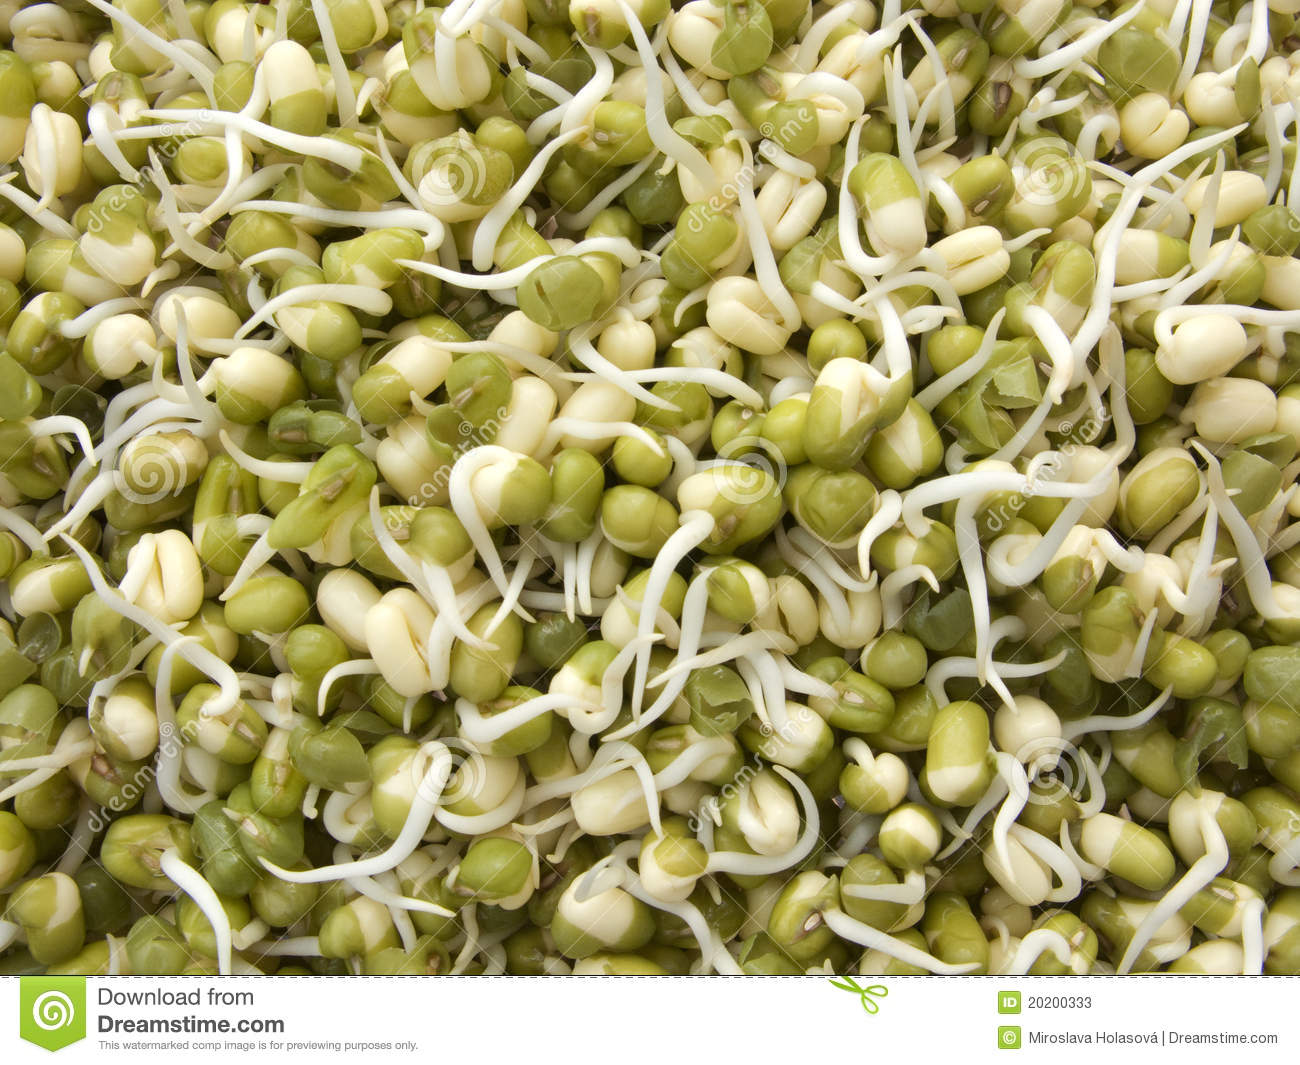 how to eat mung beans